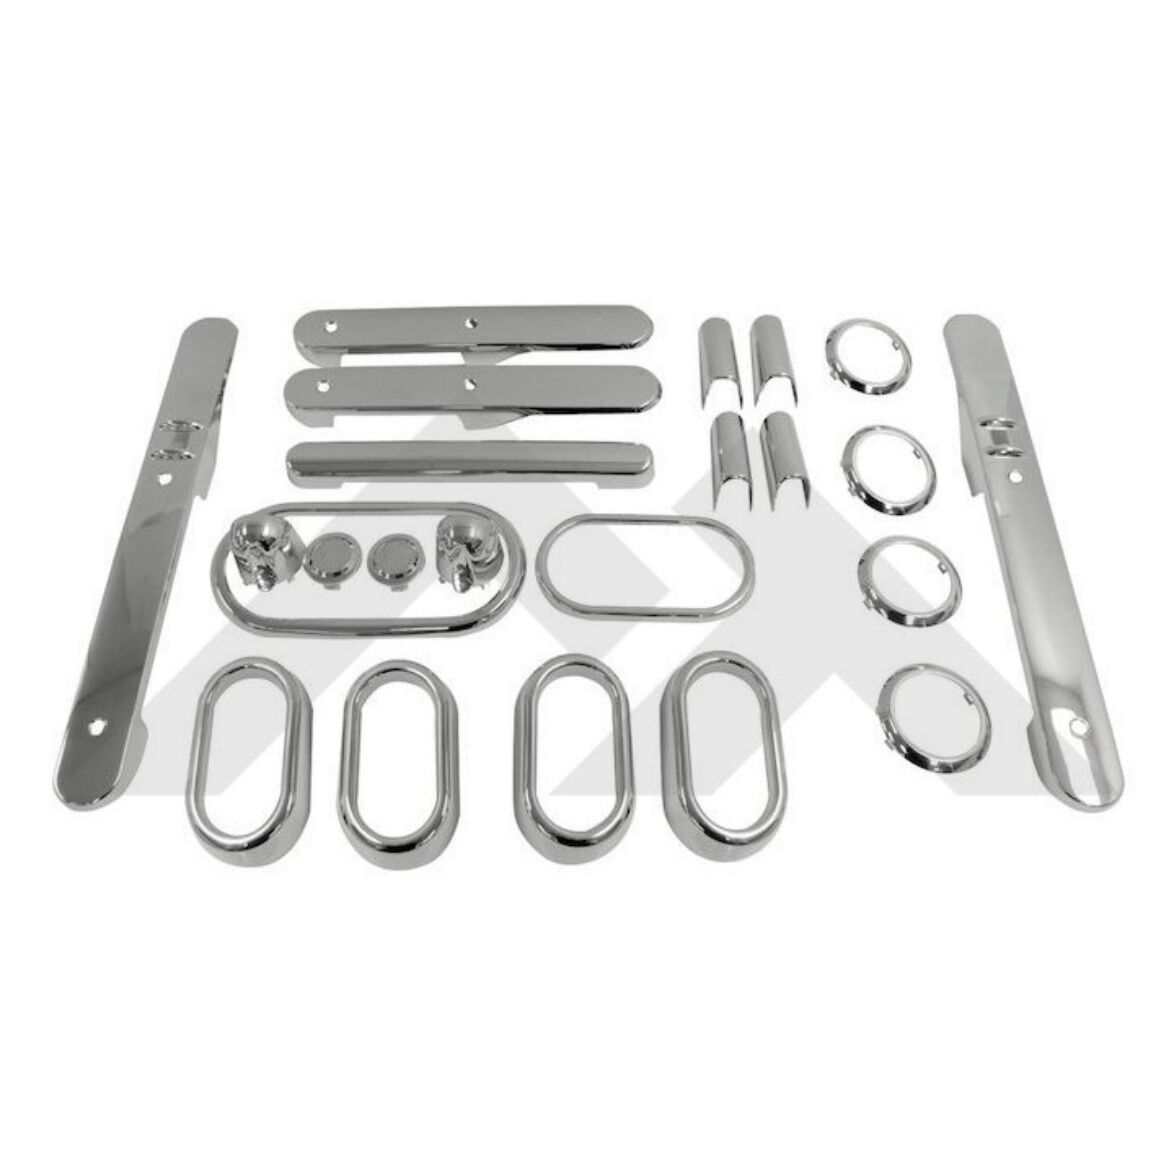 Door Handle Accents Brushed Silver for Jeep Wrangler JK 07-2010 Rough Trail